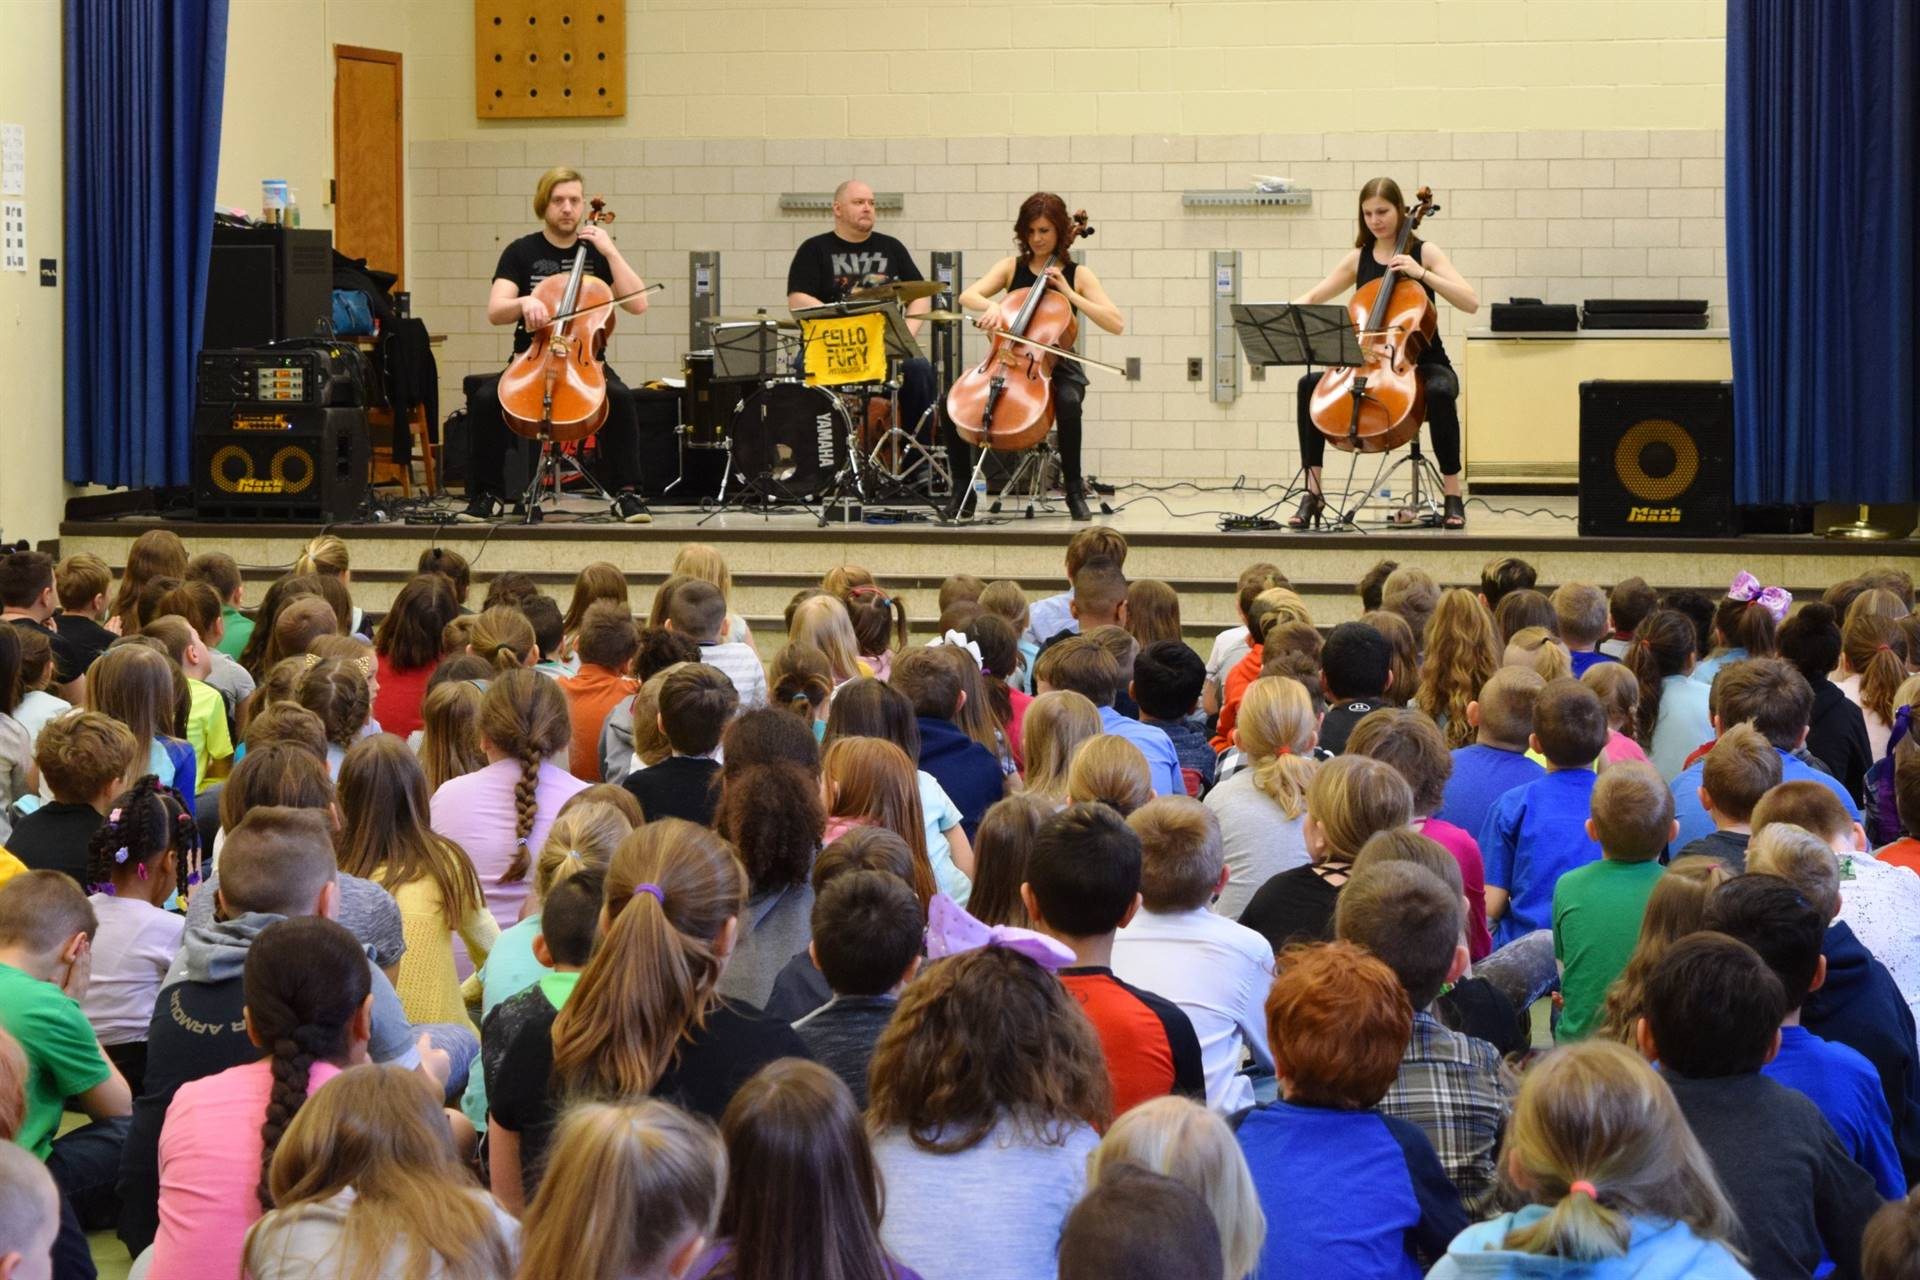 Cello Fury band playing a concert for students